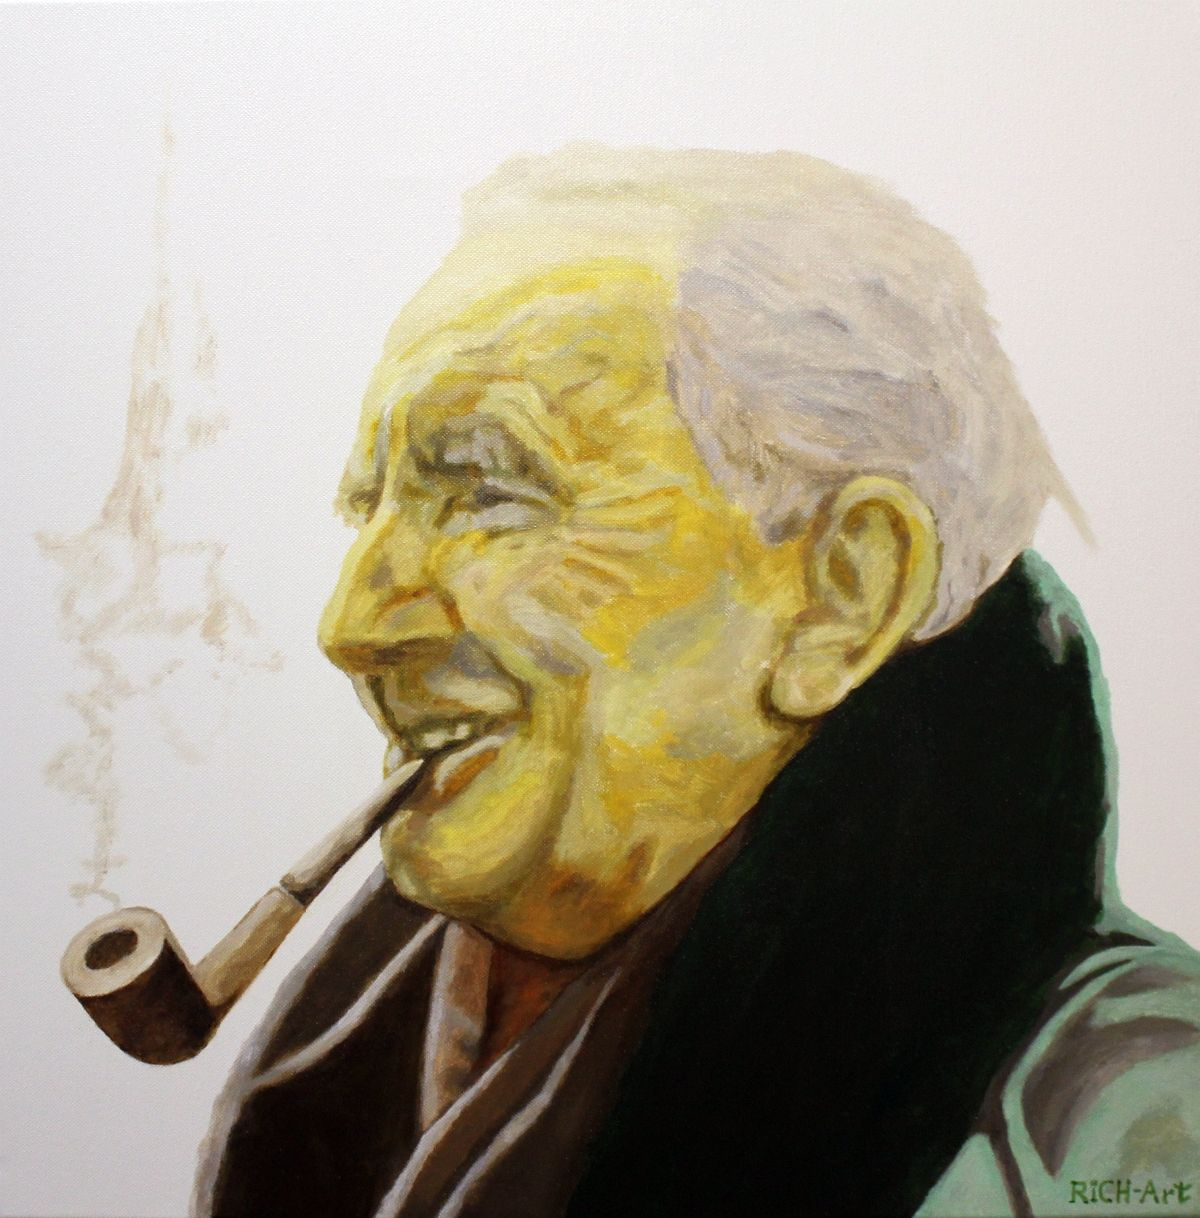 j r tolkien and bilbo The silmarillion, along with j r r tolkien's other works, forms an extensive, though incomplete the silmarillion is meant to have been translated from bilbo's three-volume translations from the elvish, which he wrote while at rivendell.